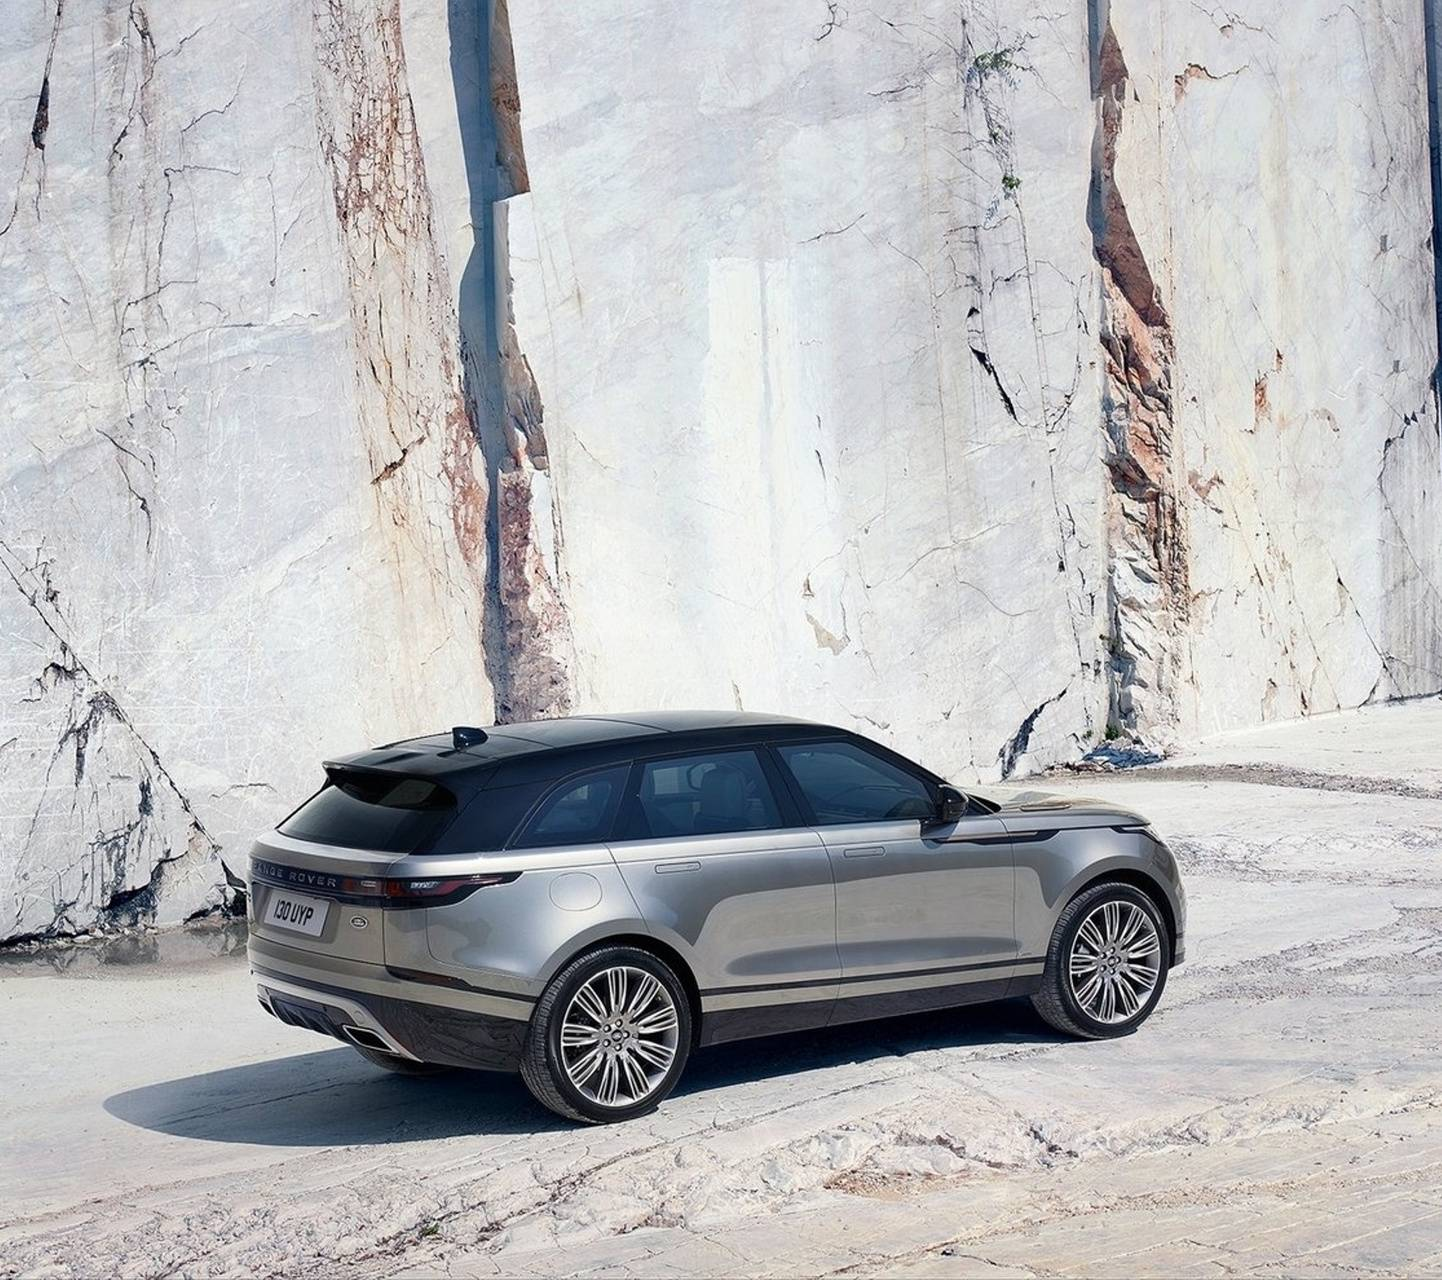 Range Rover Velar Wallpaper By Xhani Rm Ec Free On Zedge